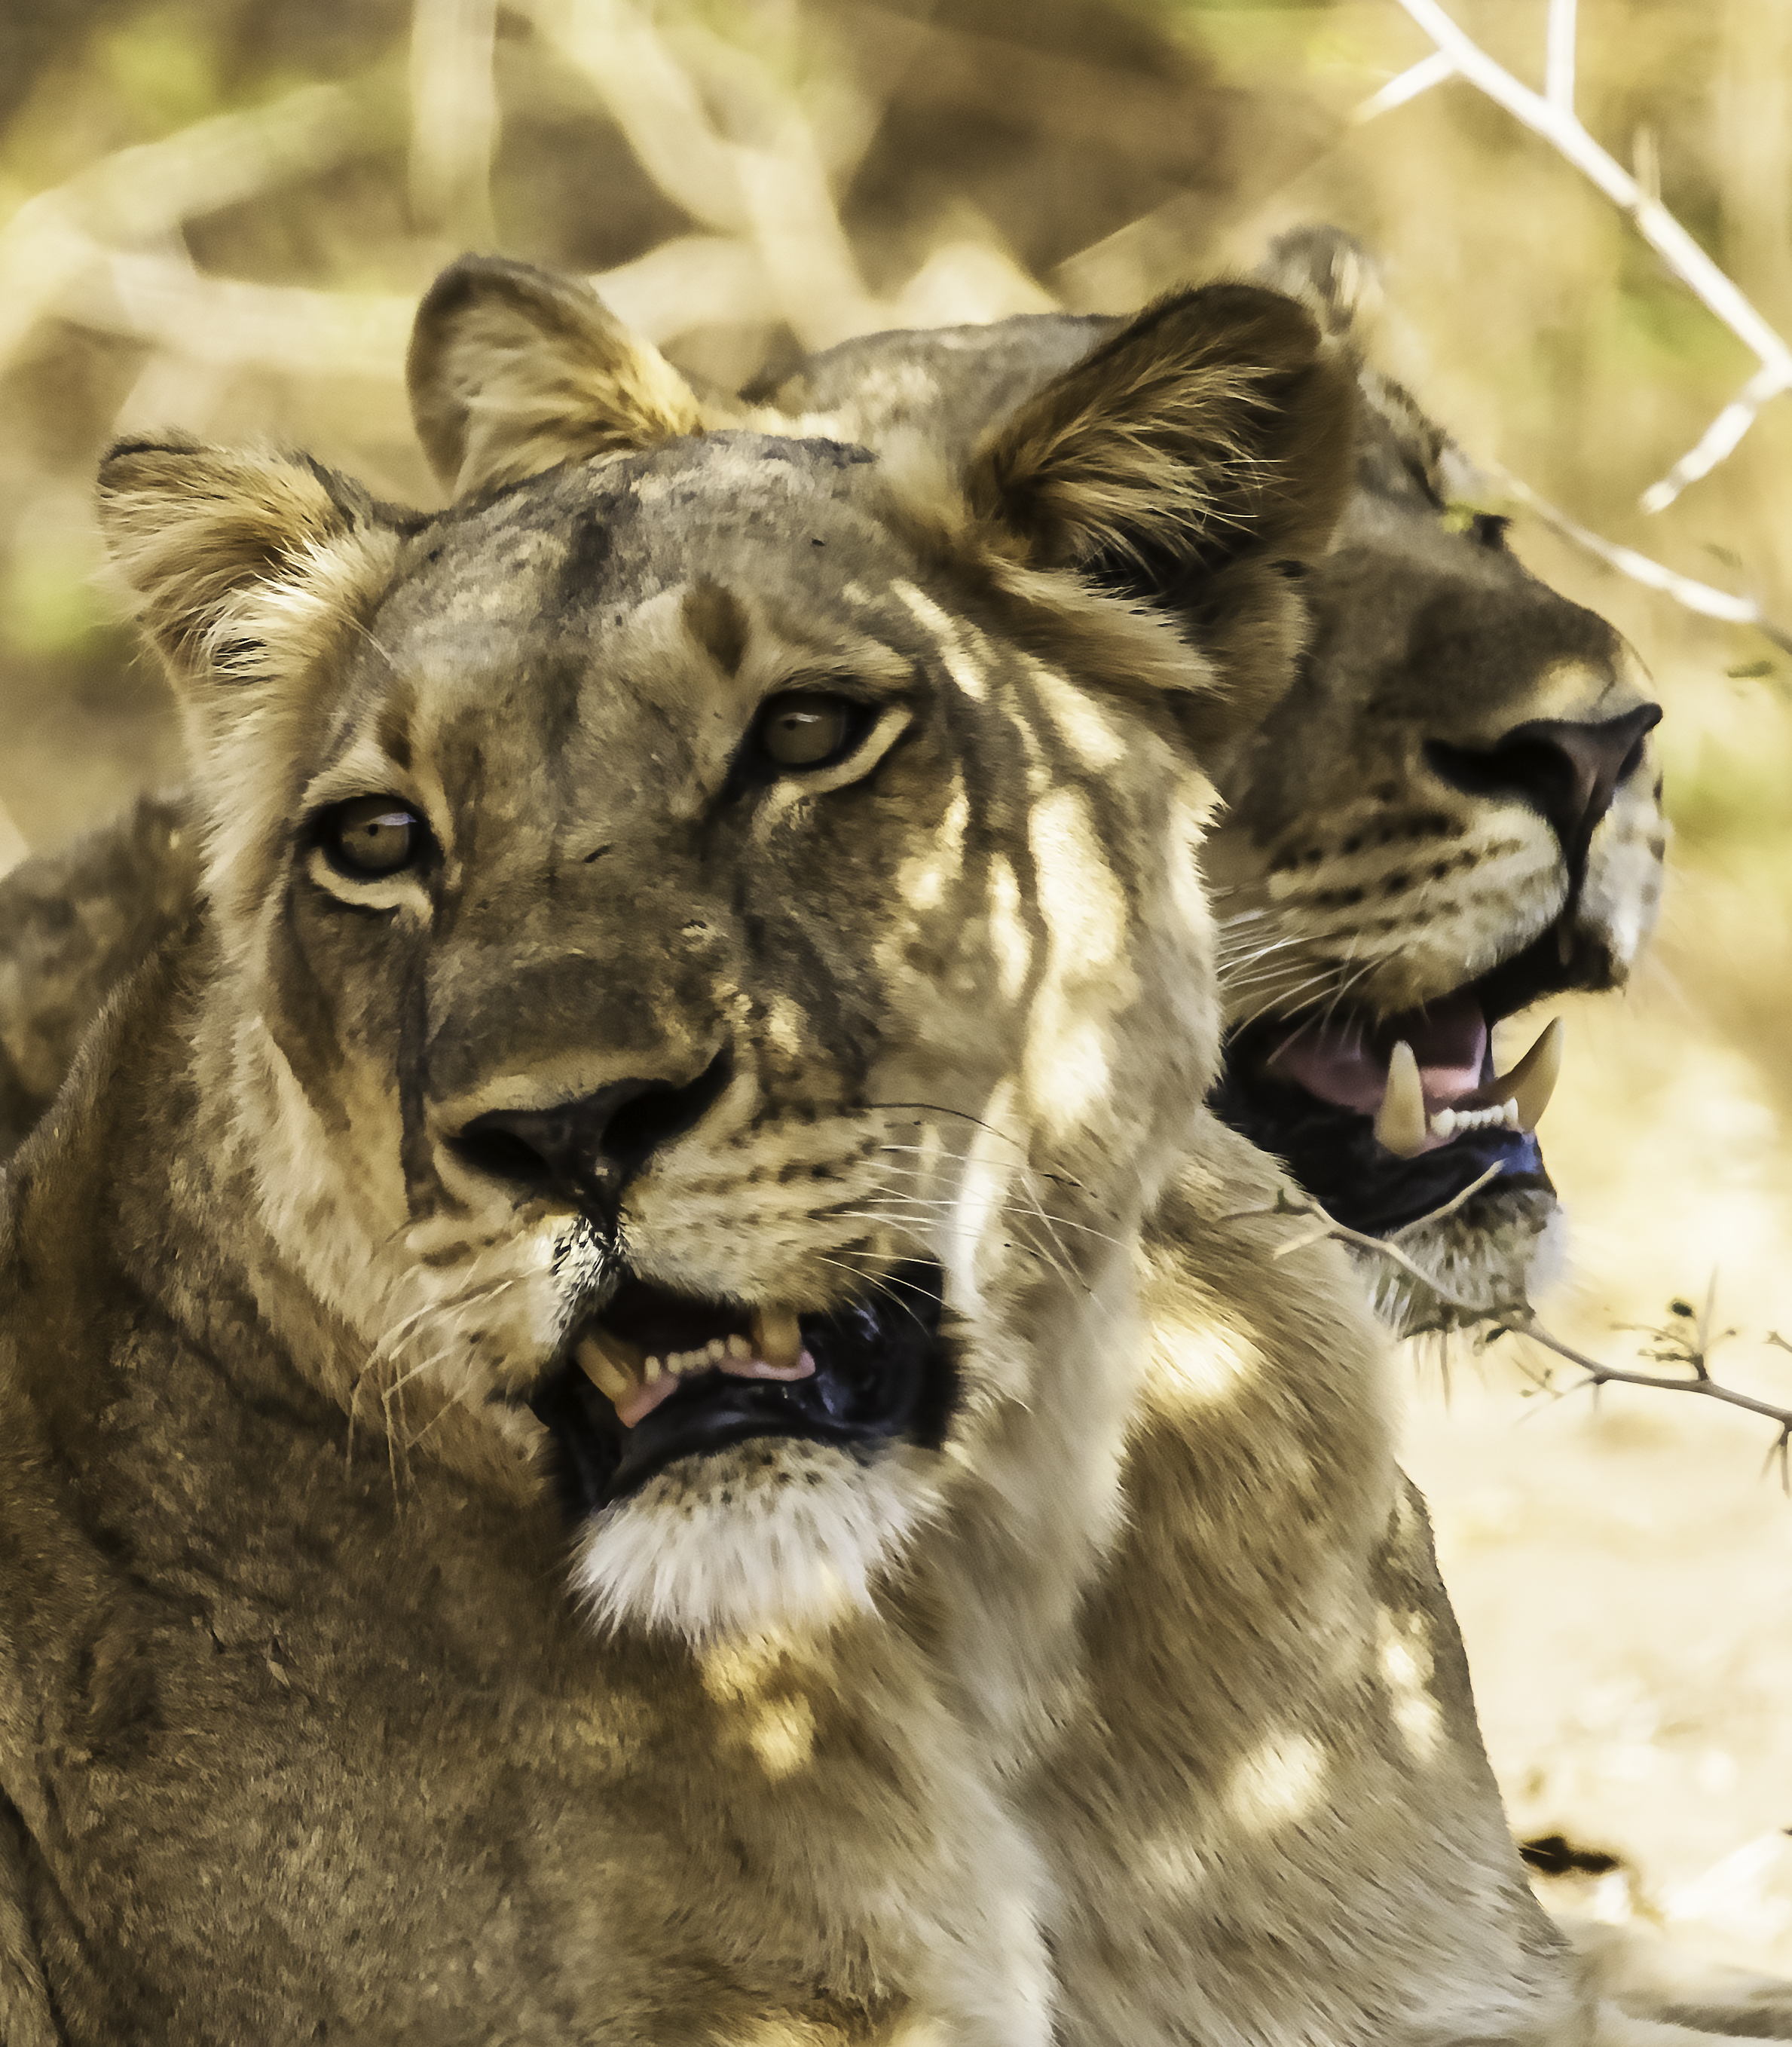 Portrait of Two Lions